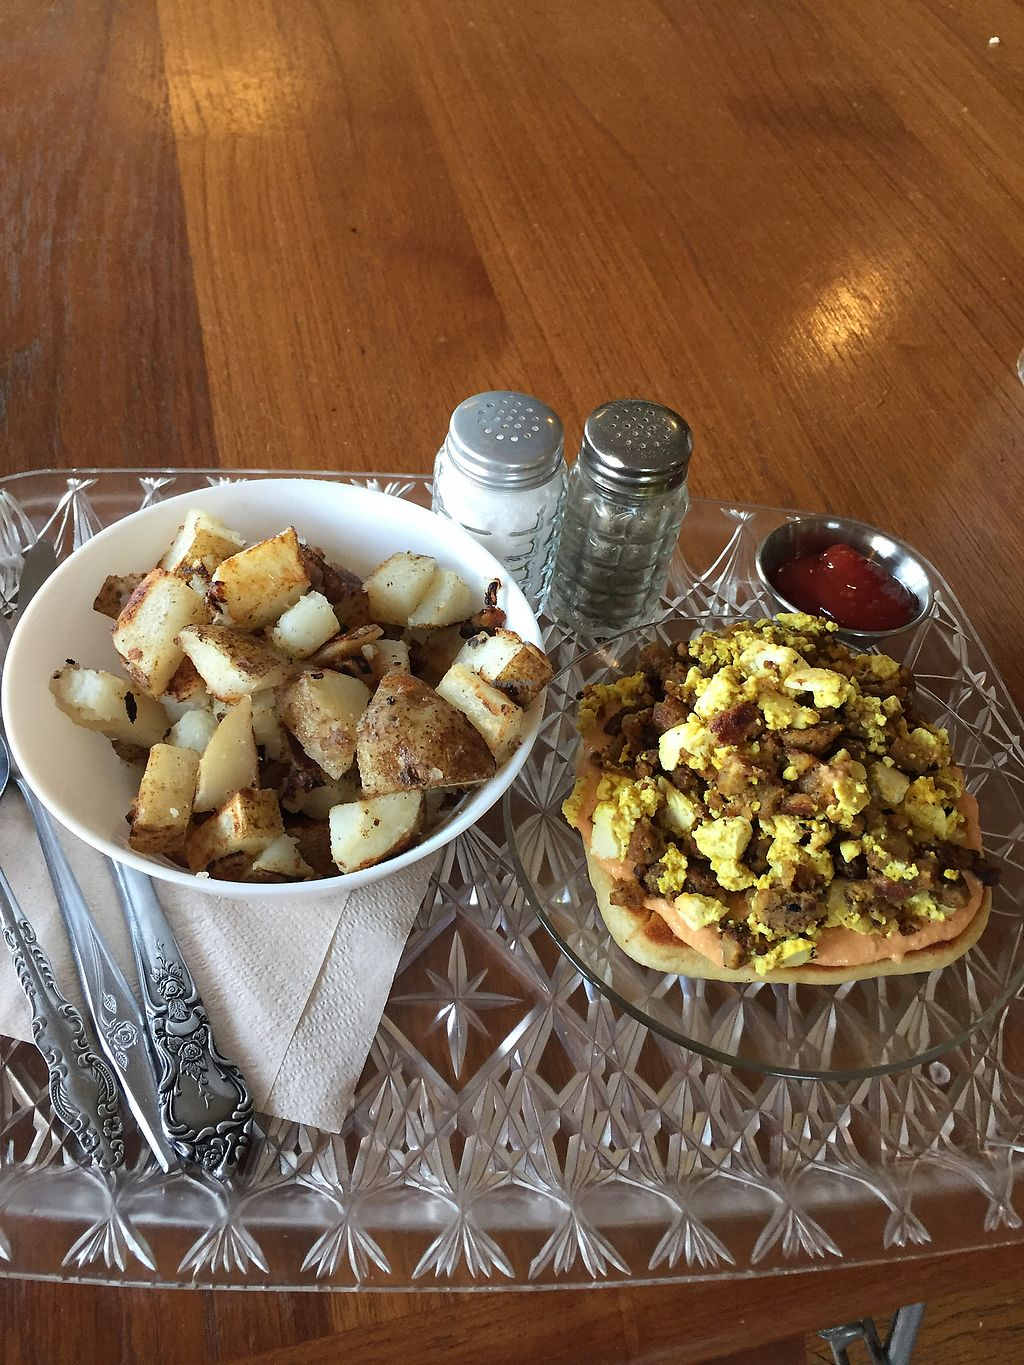 "Photo of The Breakfast Club  by <a href=""/members/profile/alexis17"">alexis17</a> <br/>egg, sausage, & queso pizza with breakfast potatoes on the side  <br/> September 13, 2017  - <a href='/contact/abuse/image/80253/303872'>Report</a>"